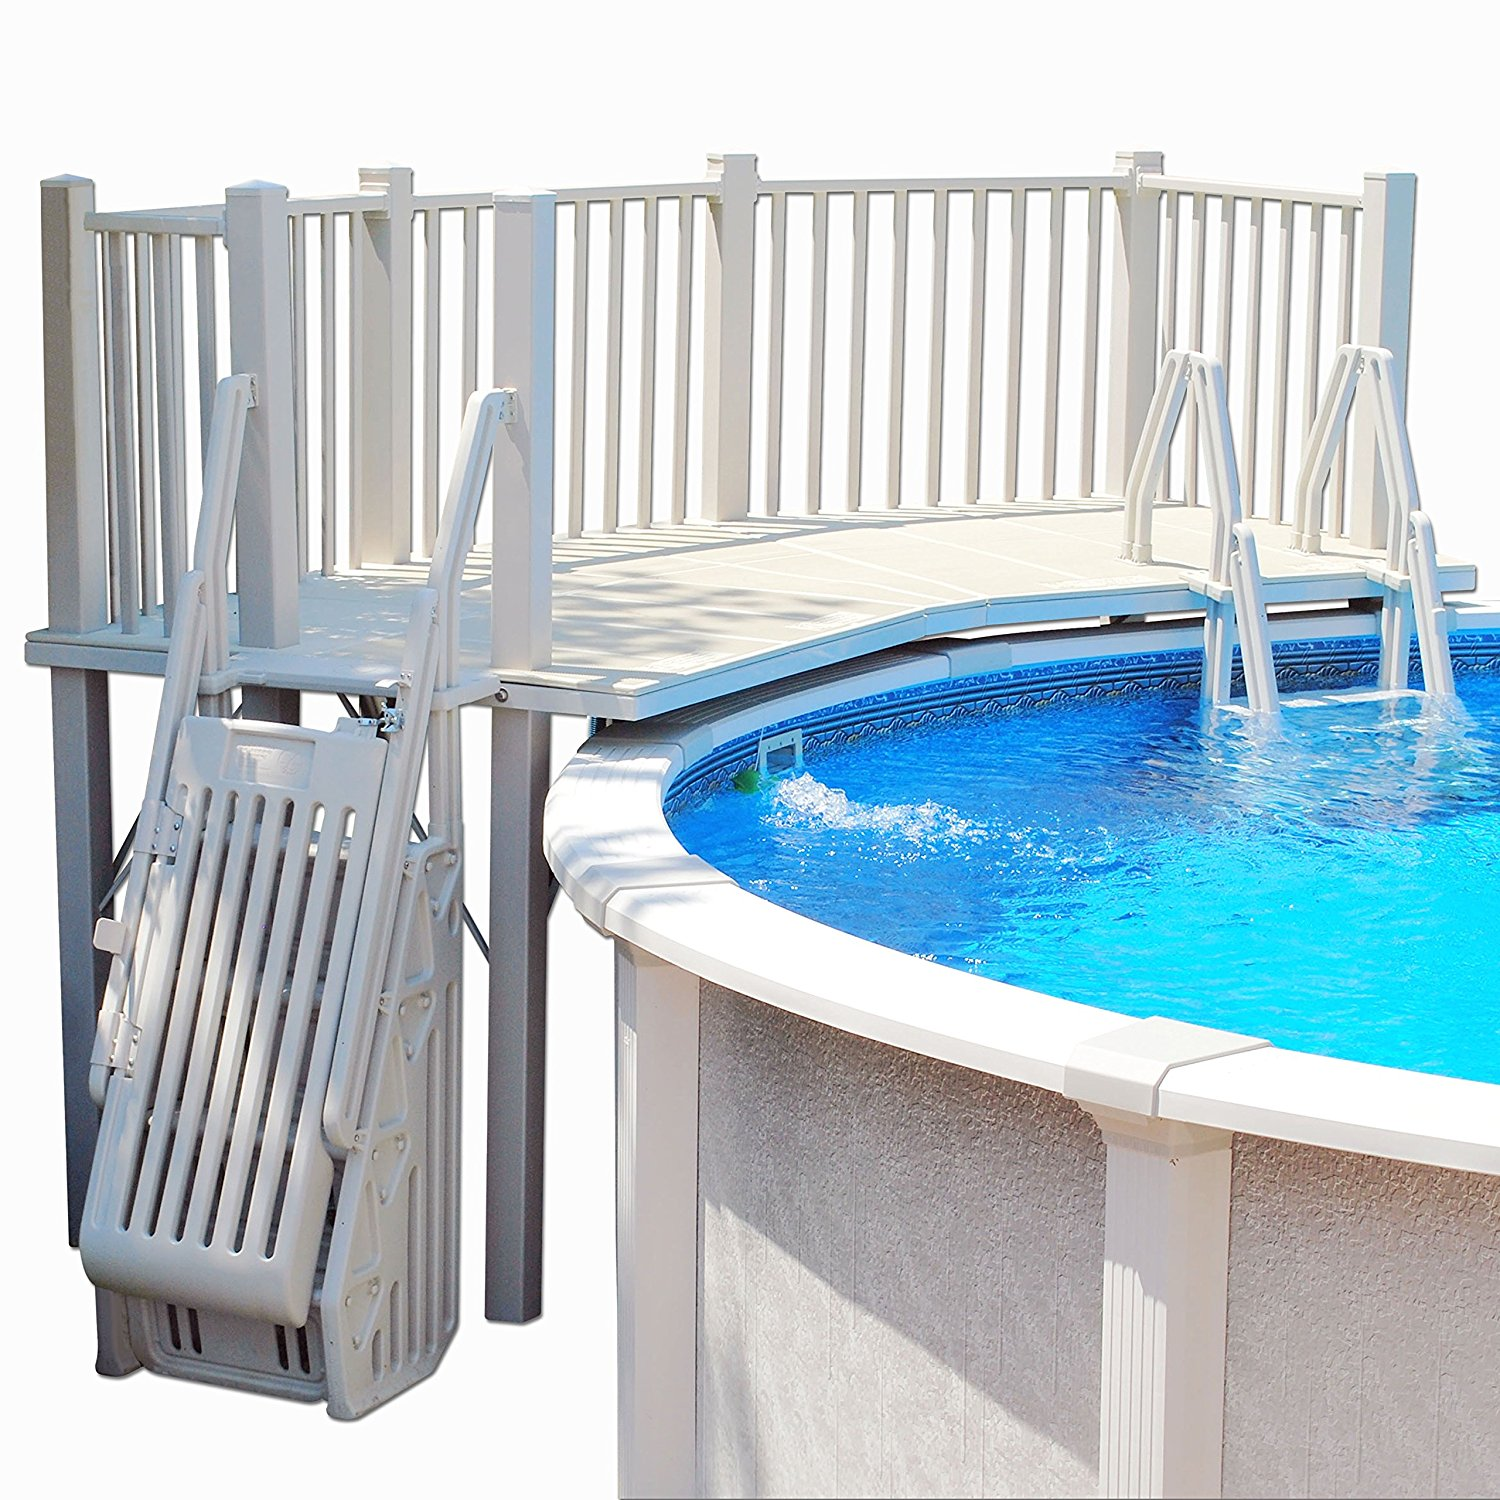 Vinyl works above ground swimming pool resin deck kit simply fun pools for Resin above ground swimming pools